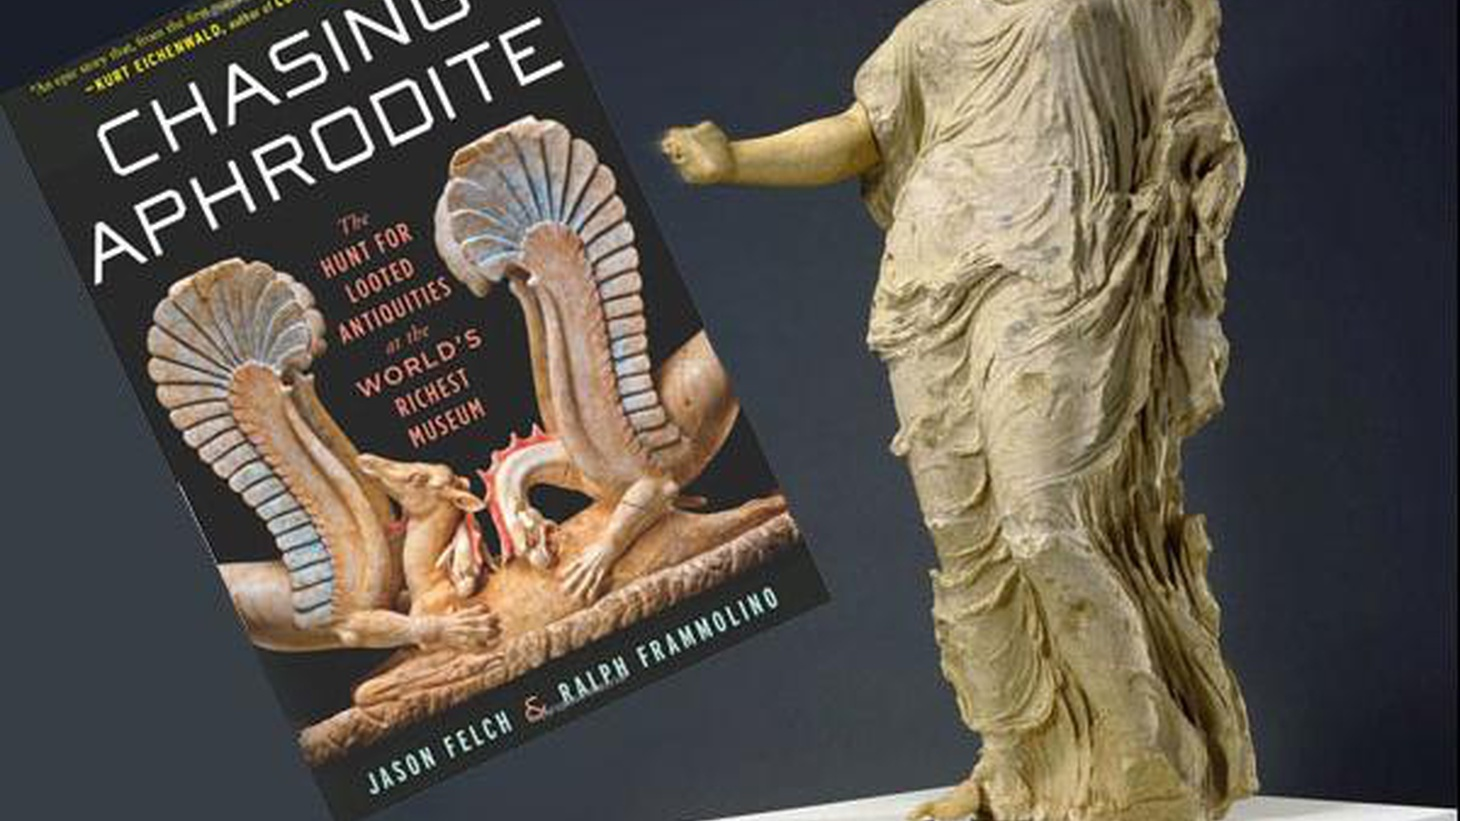 The Getty's famous statue of Aphrodite has gone home from Malibu to a small town in Sicily. A new book tells the story of beauty, corruption and the waste of millions...